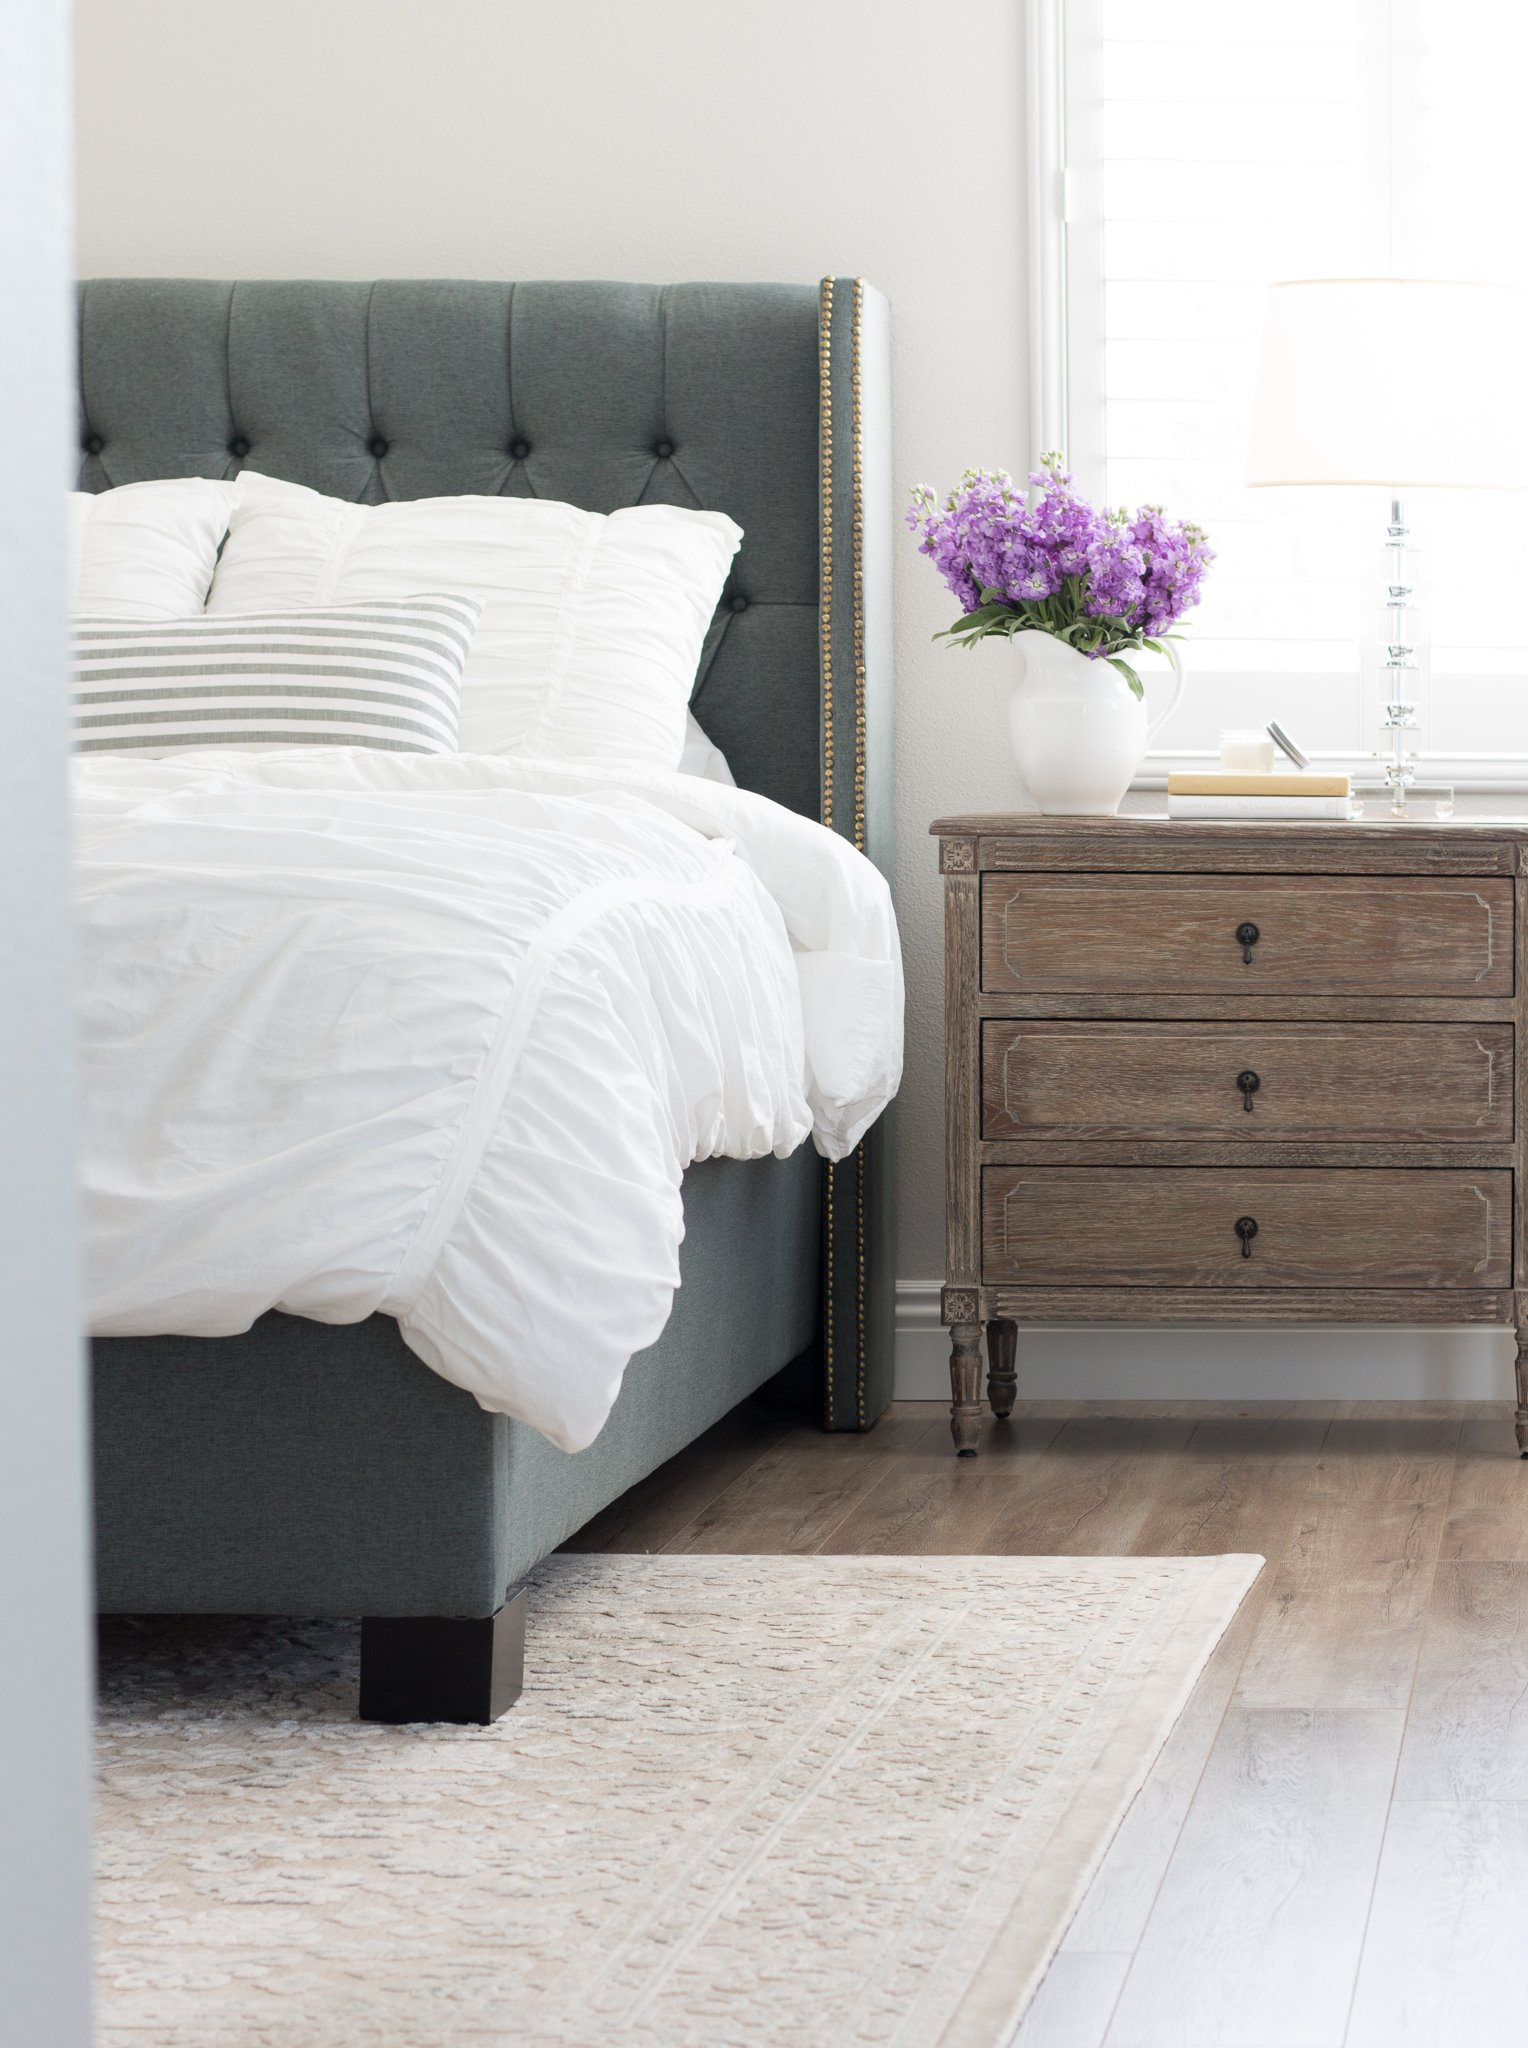 master bedroom bedding a thoughtful place 12253 | master bedroom bedding 5